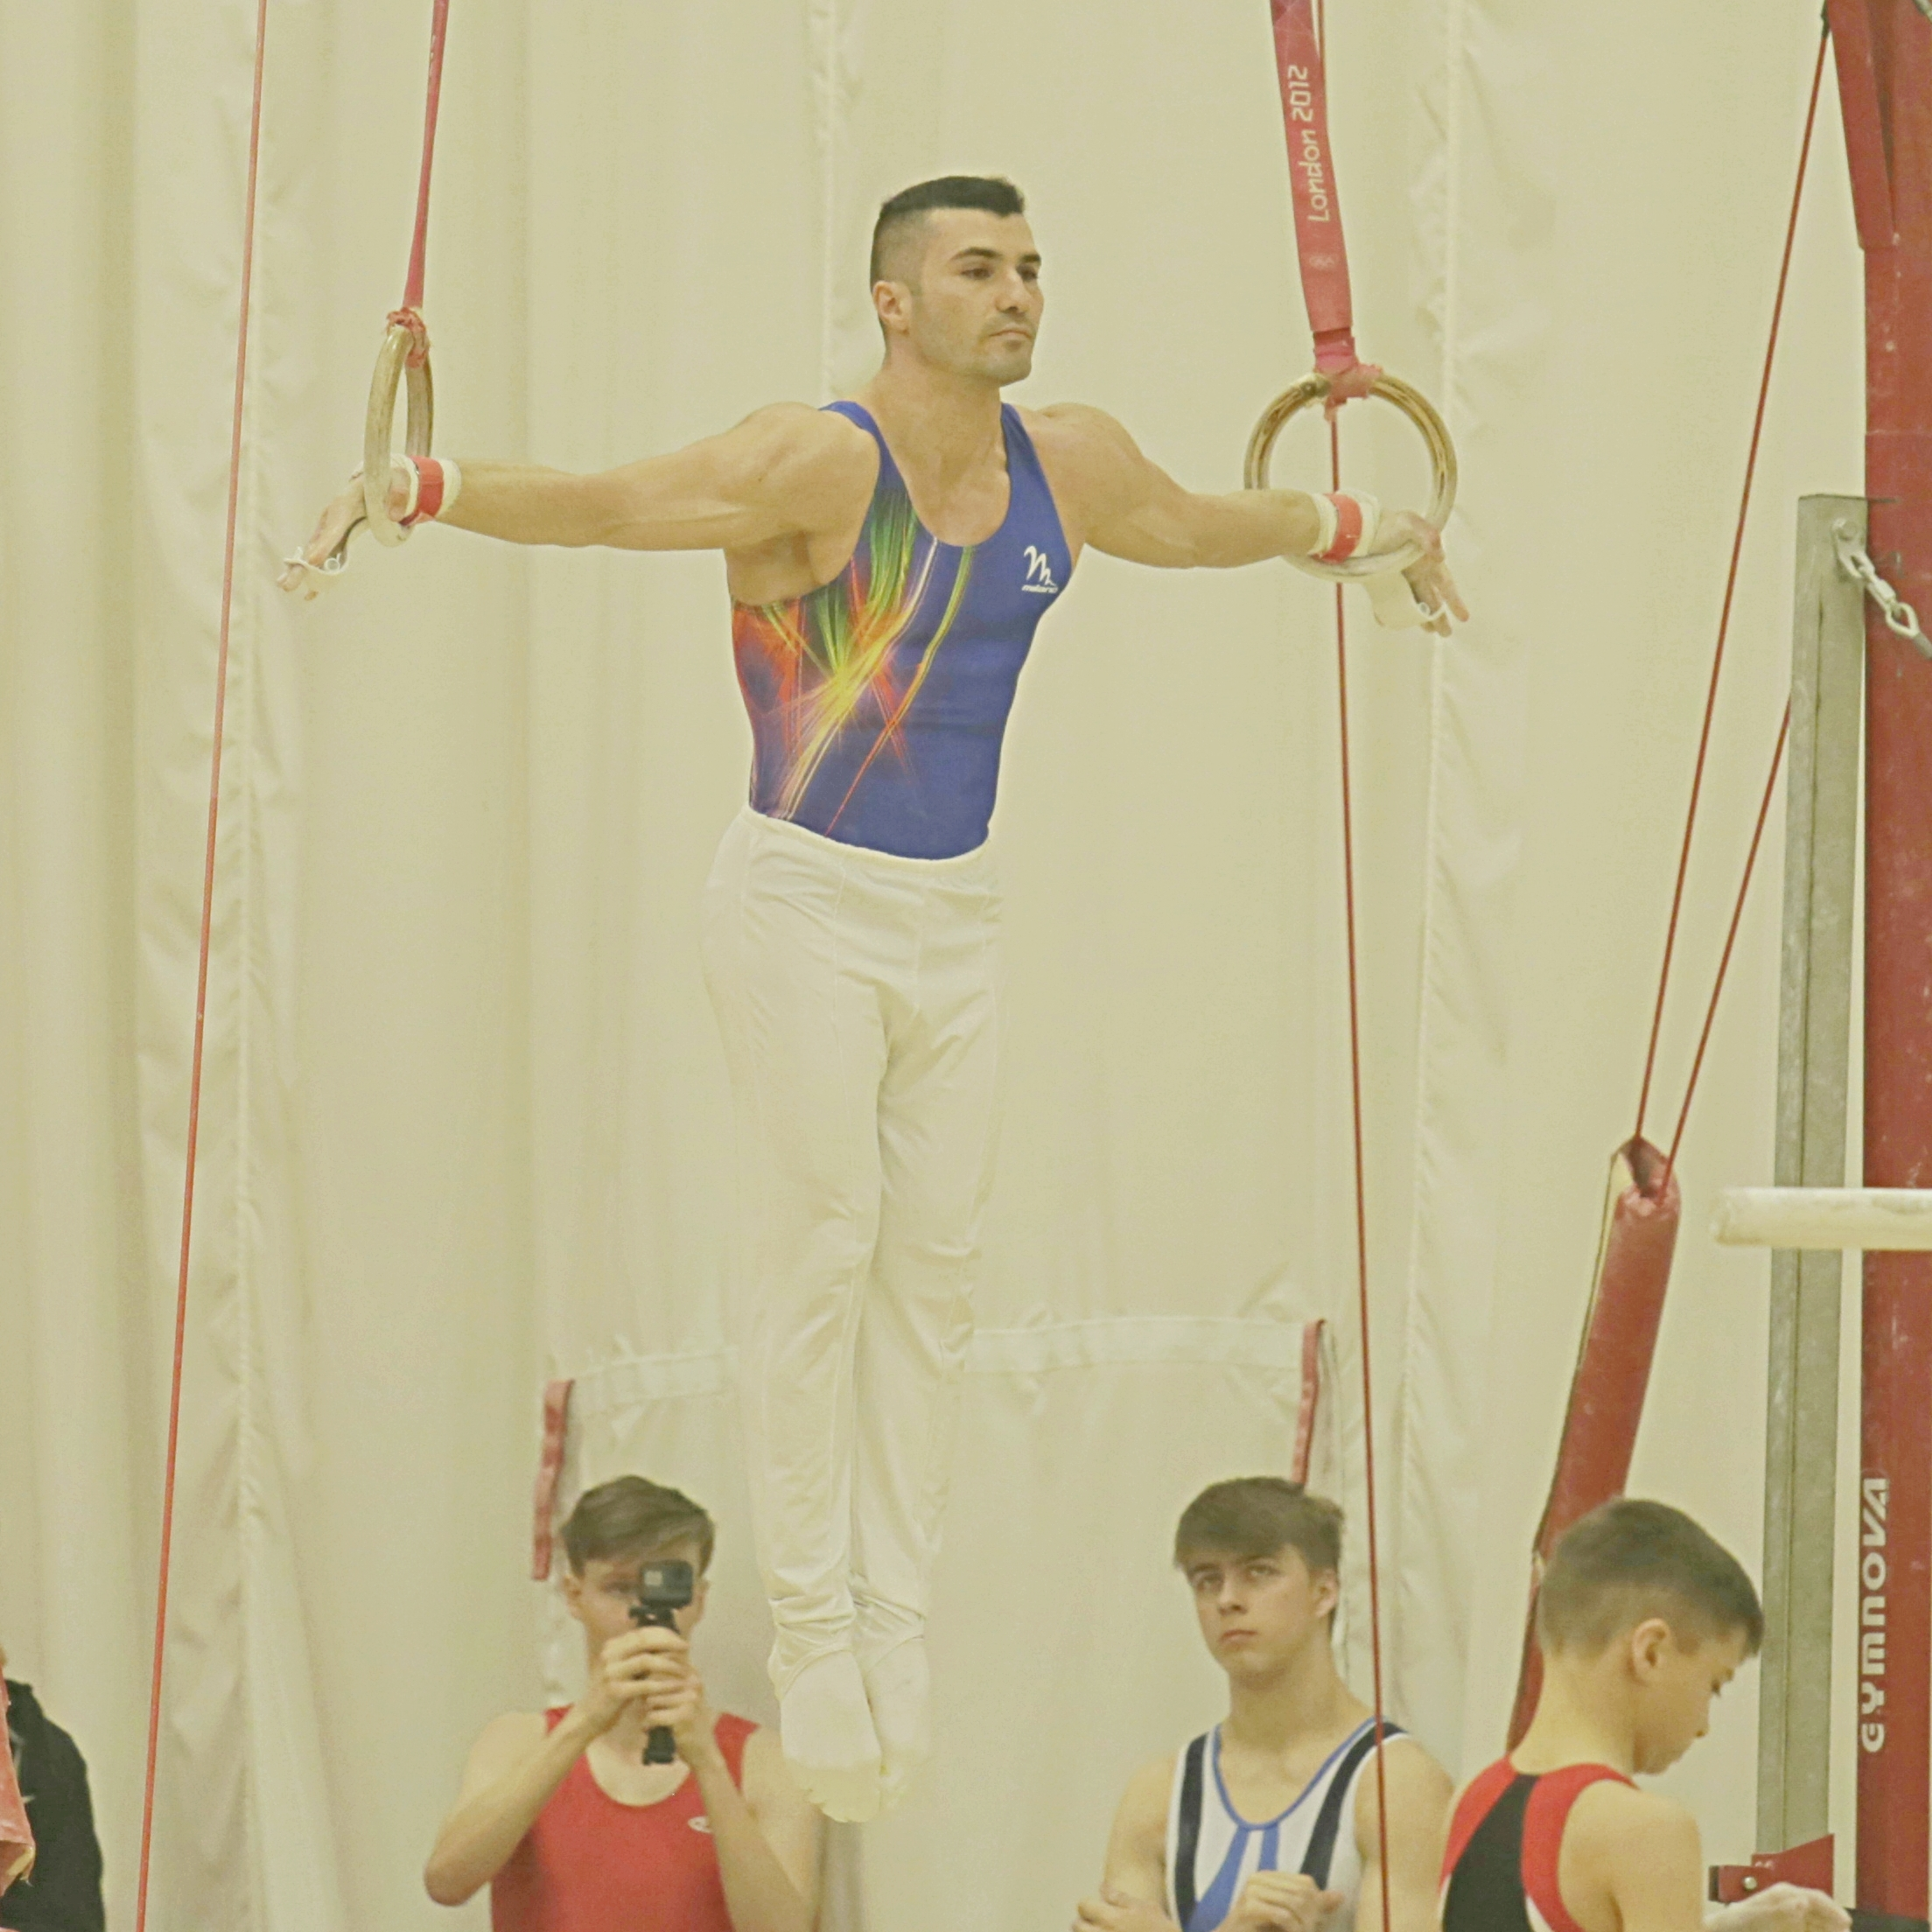 Dr Stefan Kolimechkov competing on Rings in London